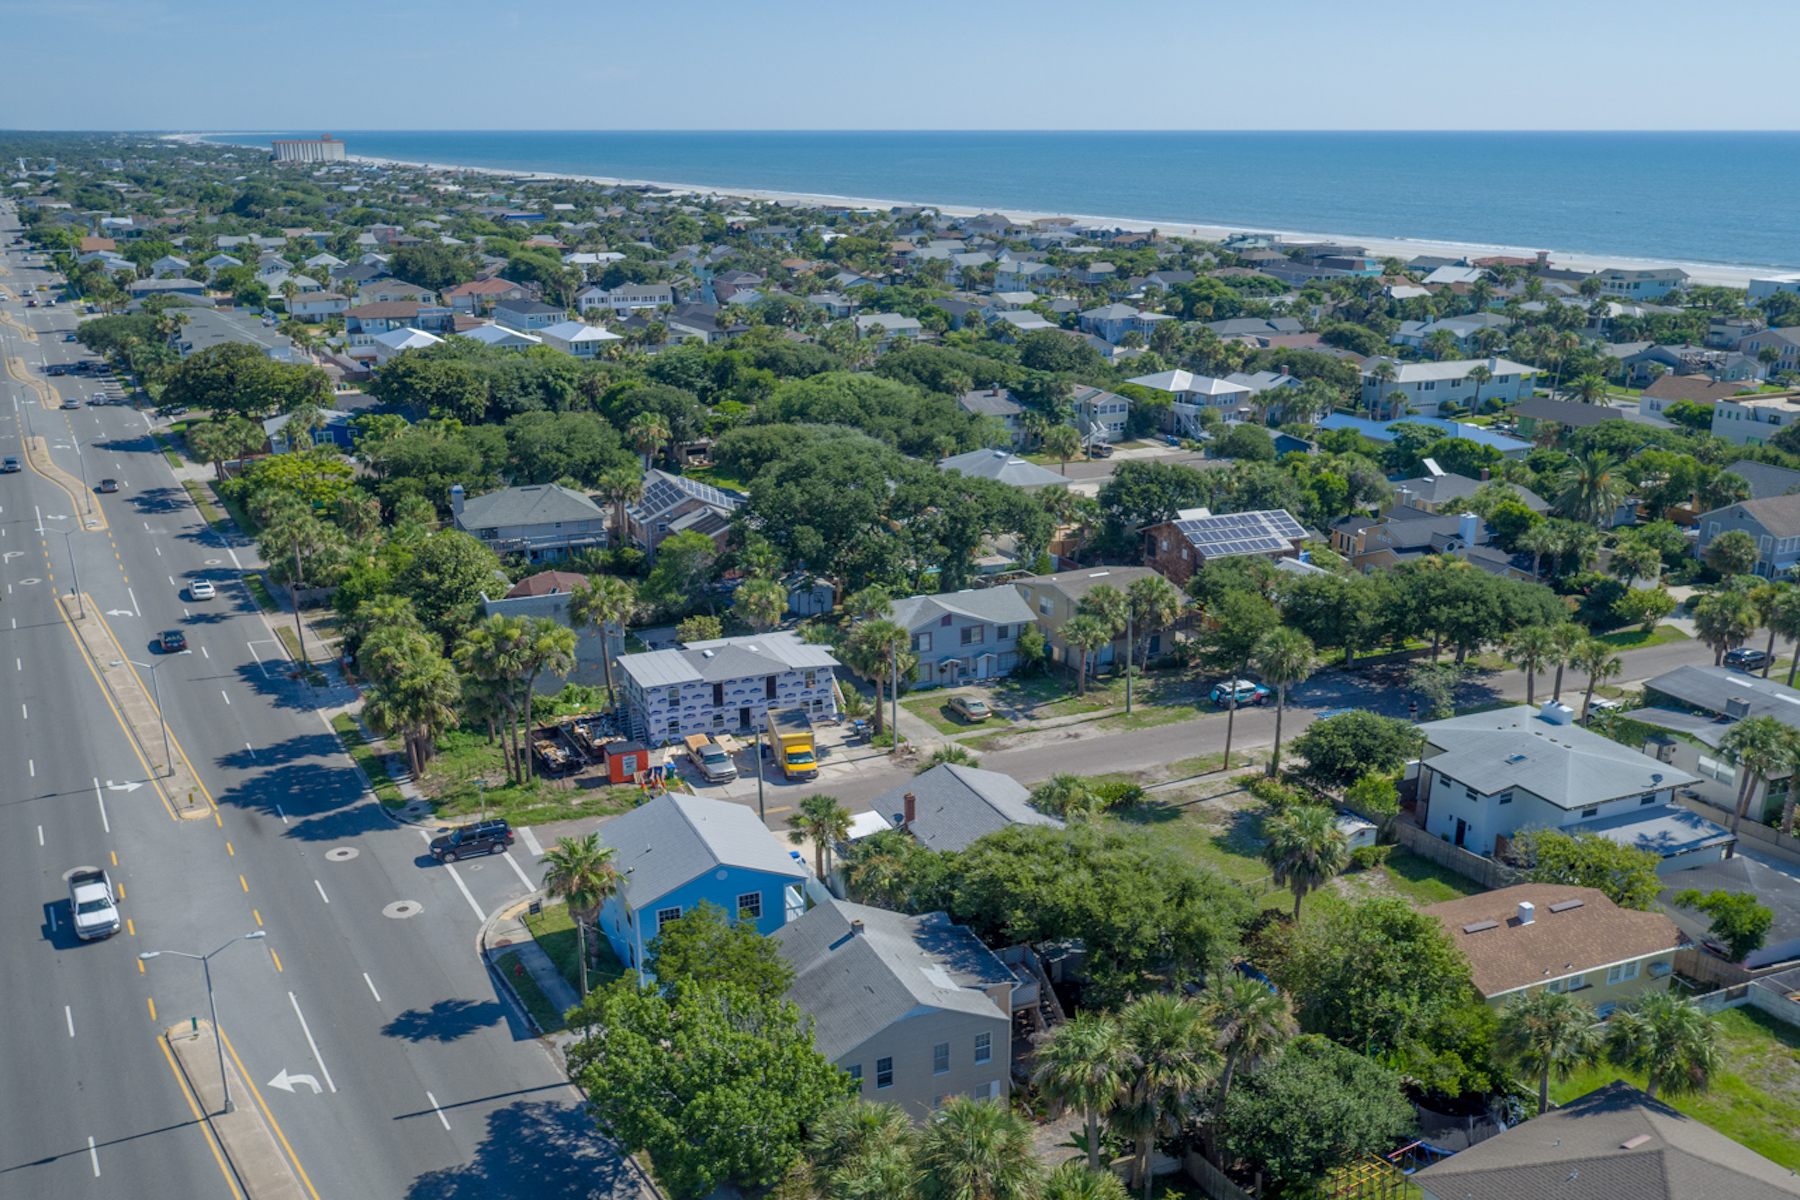 Single Family Homes for Sale at Neptune Beauty 237 Oleander Street, Neptune Beach, Florida 32266 United States